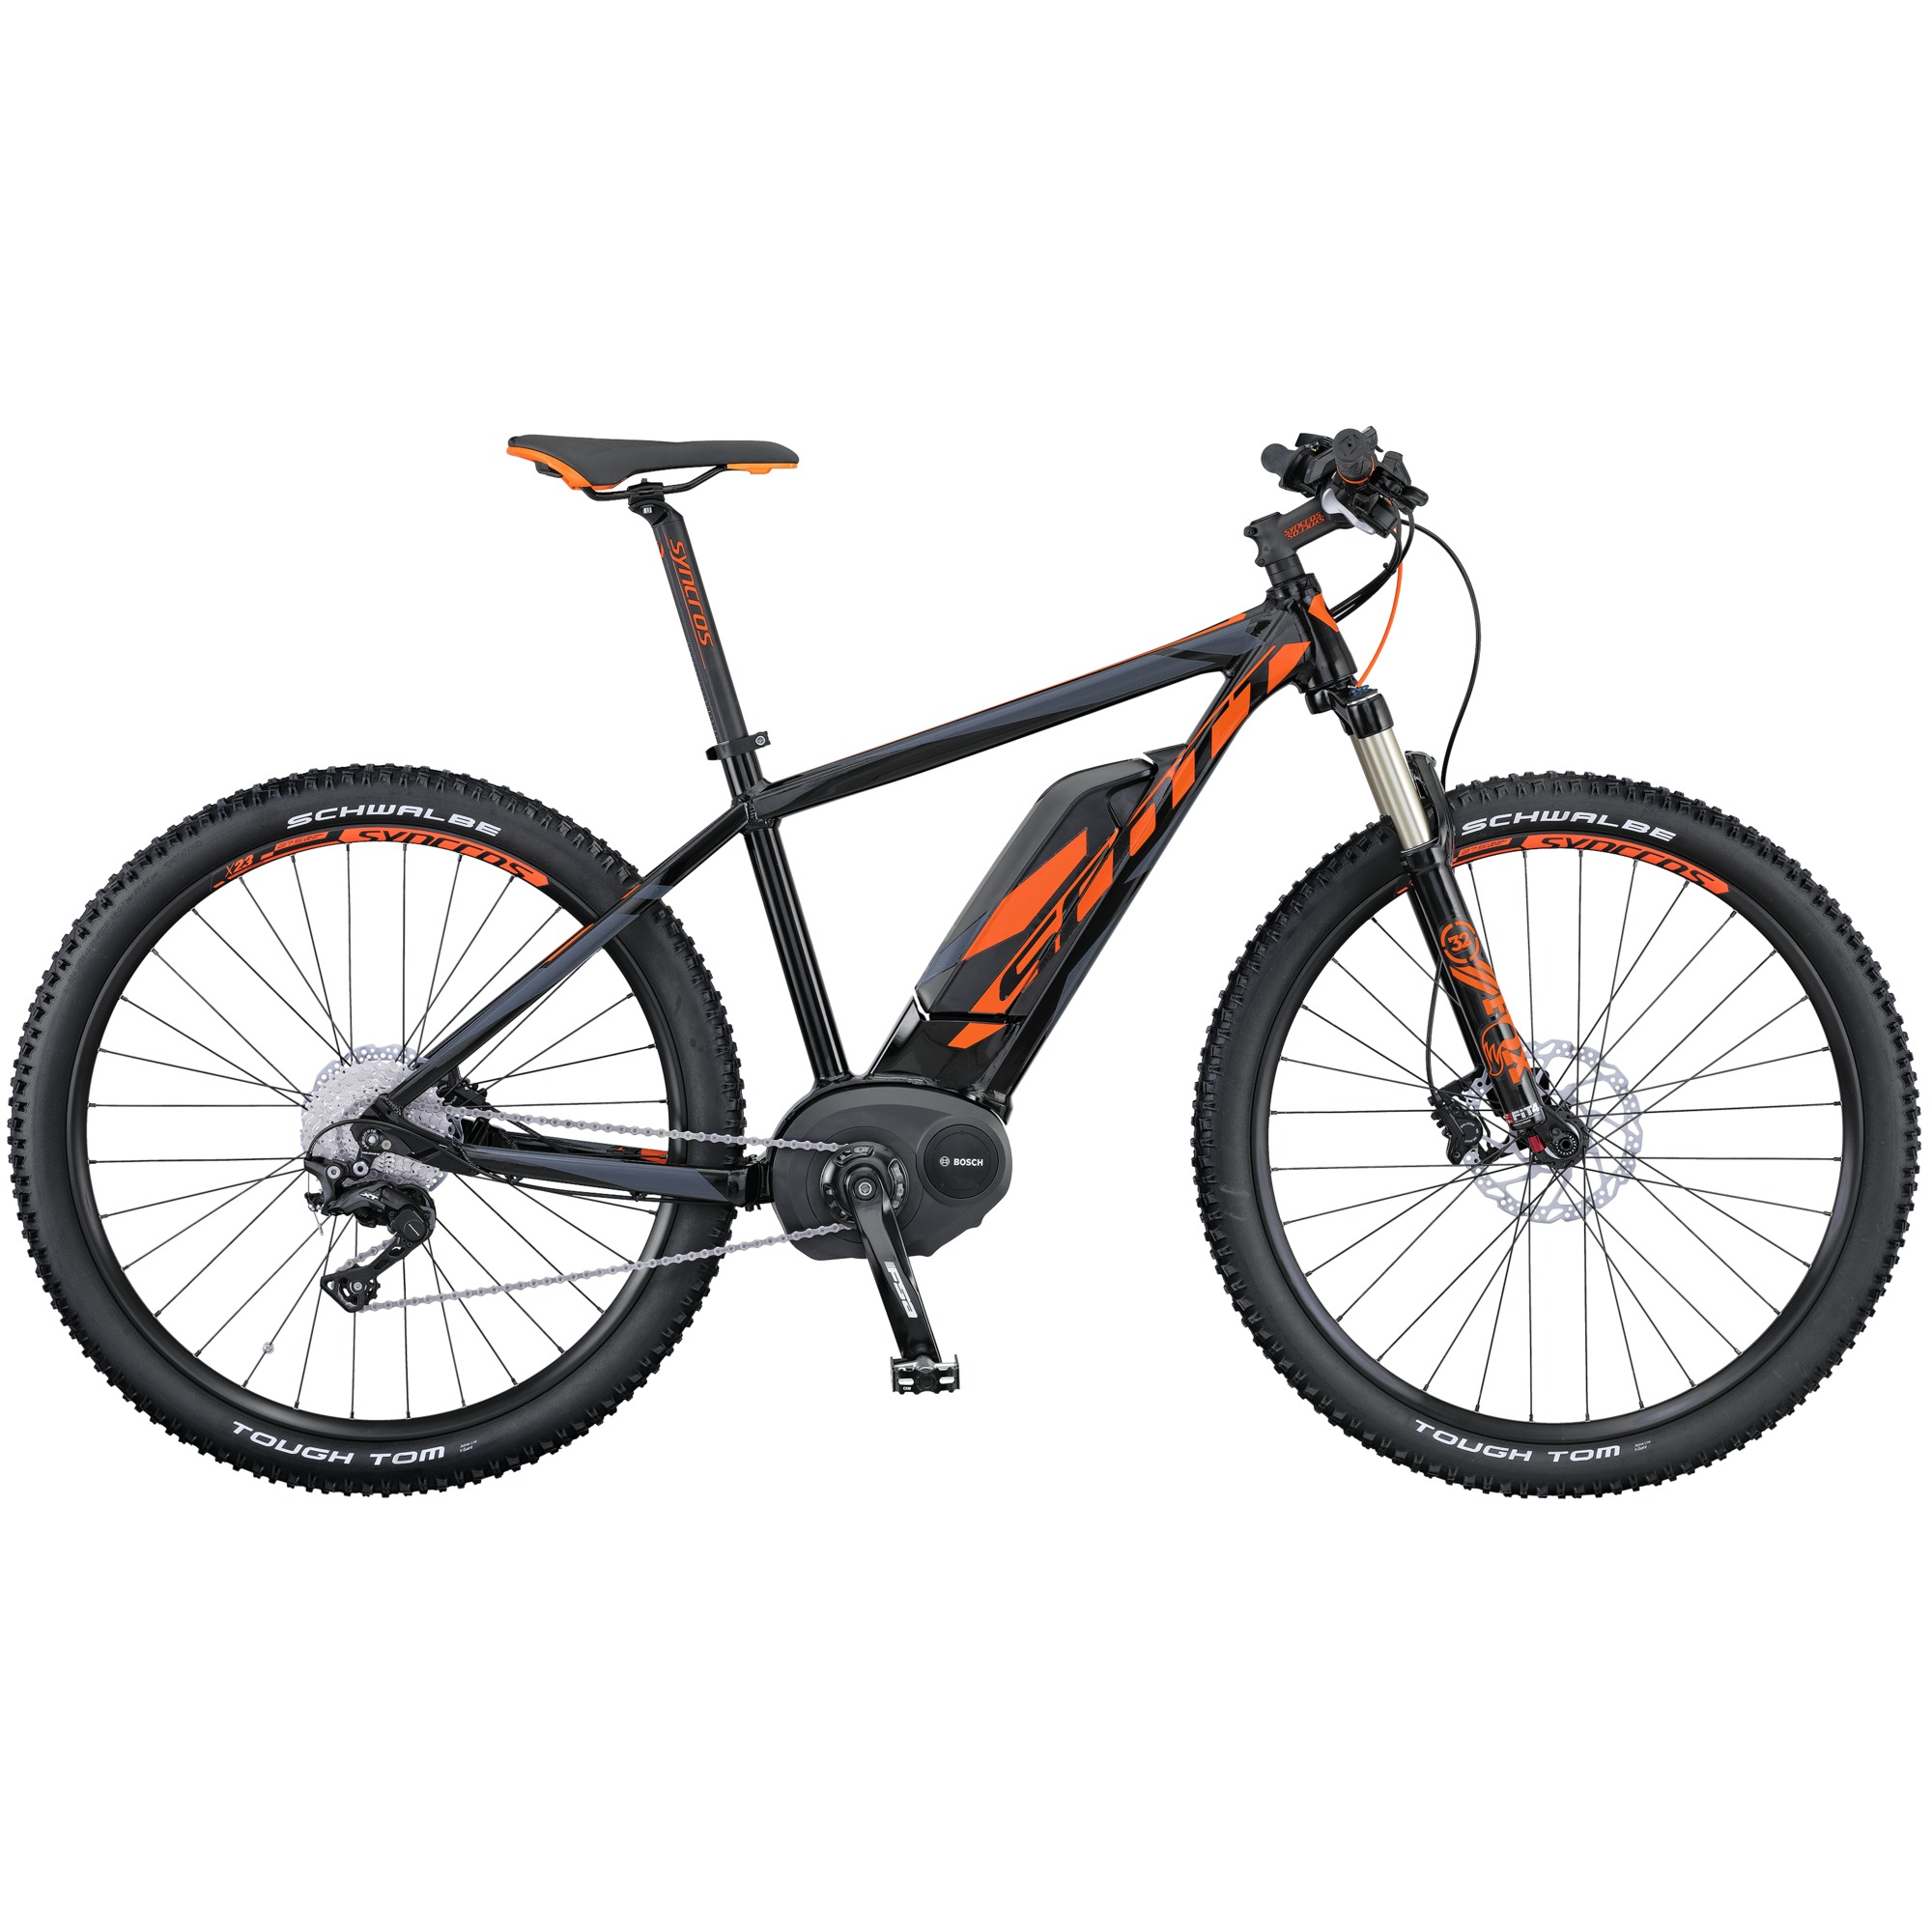 novit e listini e bike ktm e scott 2016 hybrid bikes. Black Bedroom Furniture Sets. Home Design Ideas